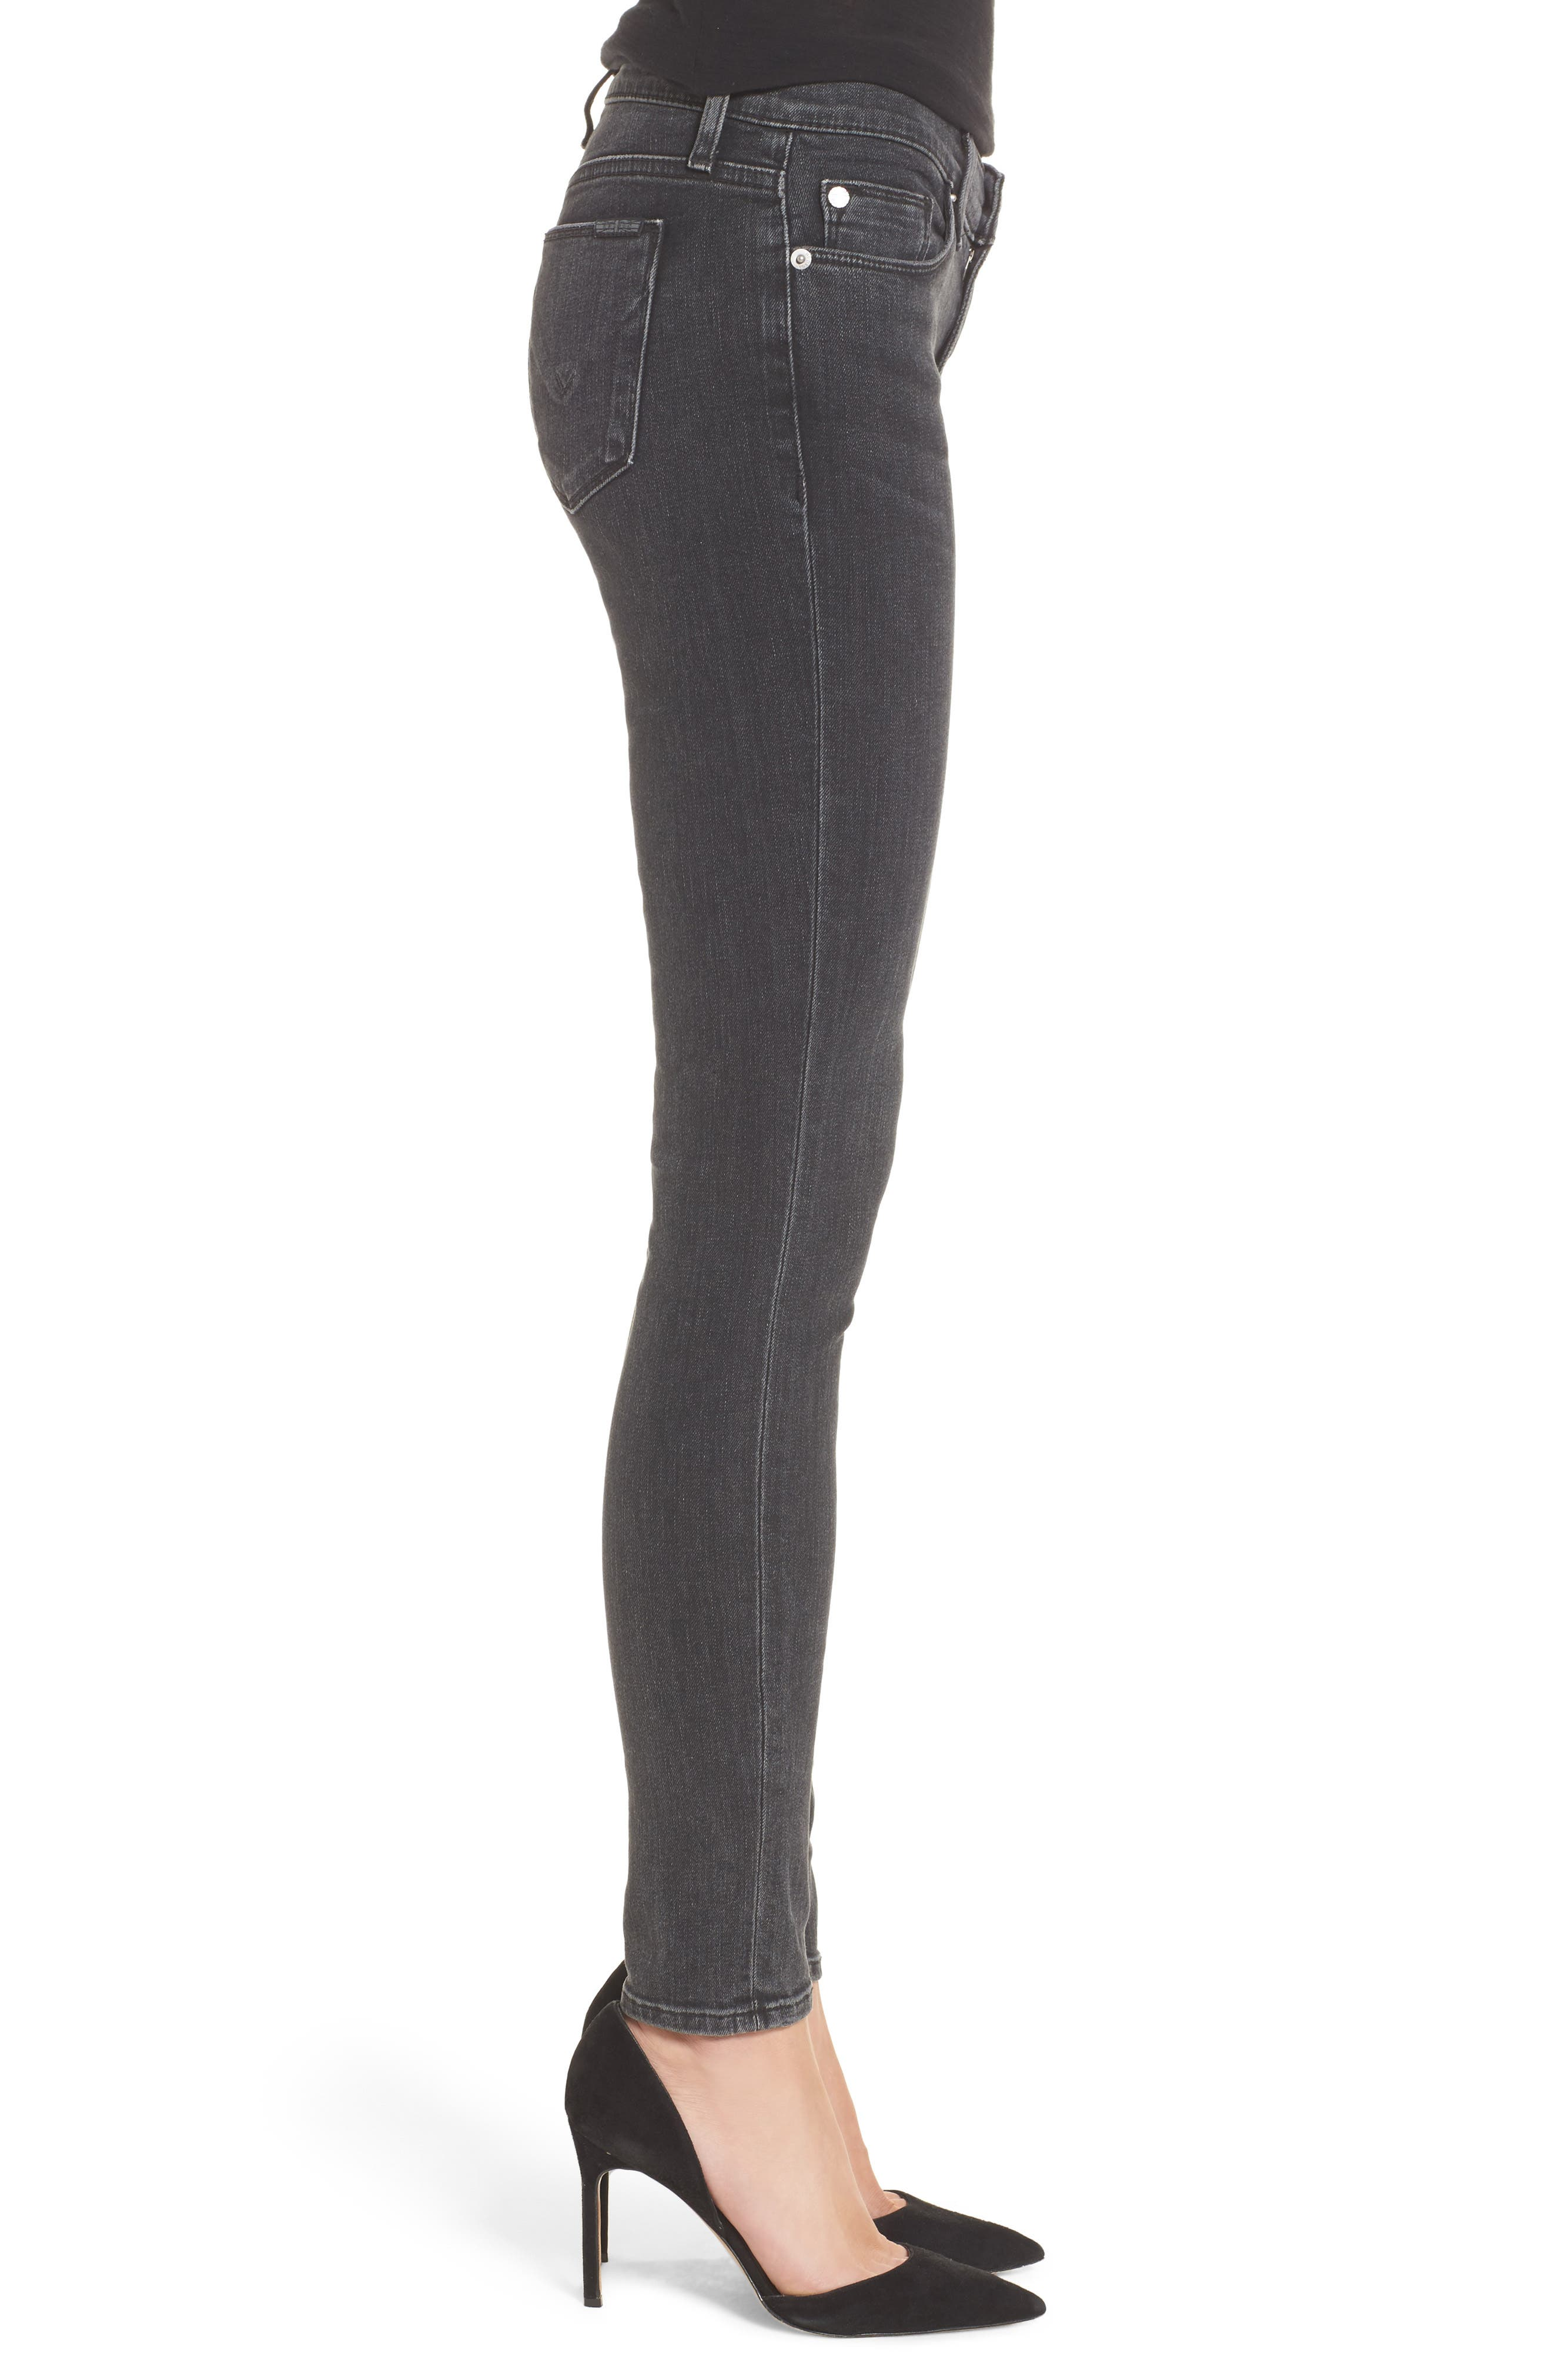 Krista Super Skinny Jeans,                             Alternate thumbnail 3, color,                             001